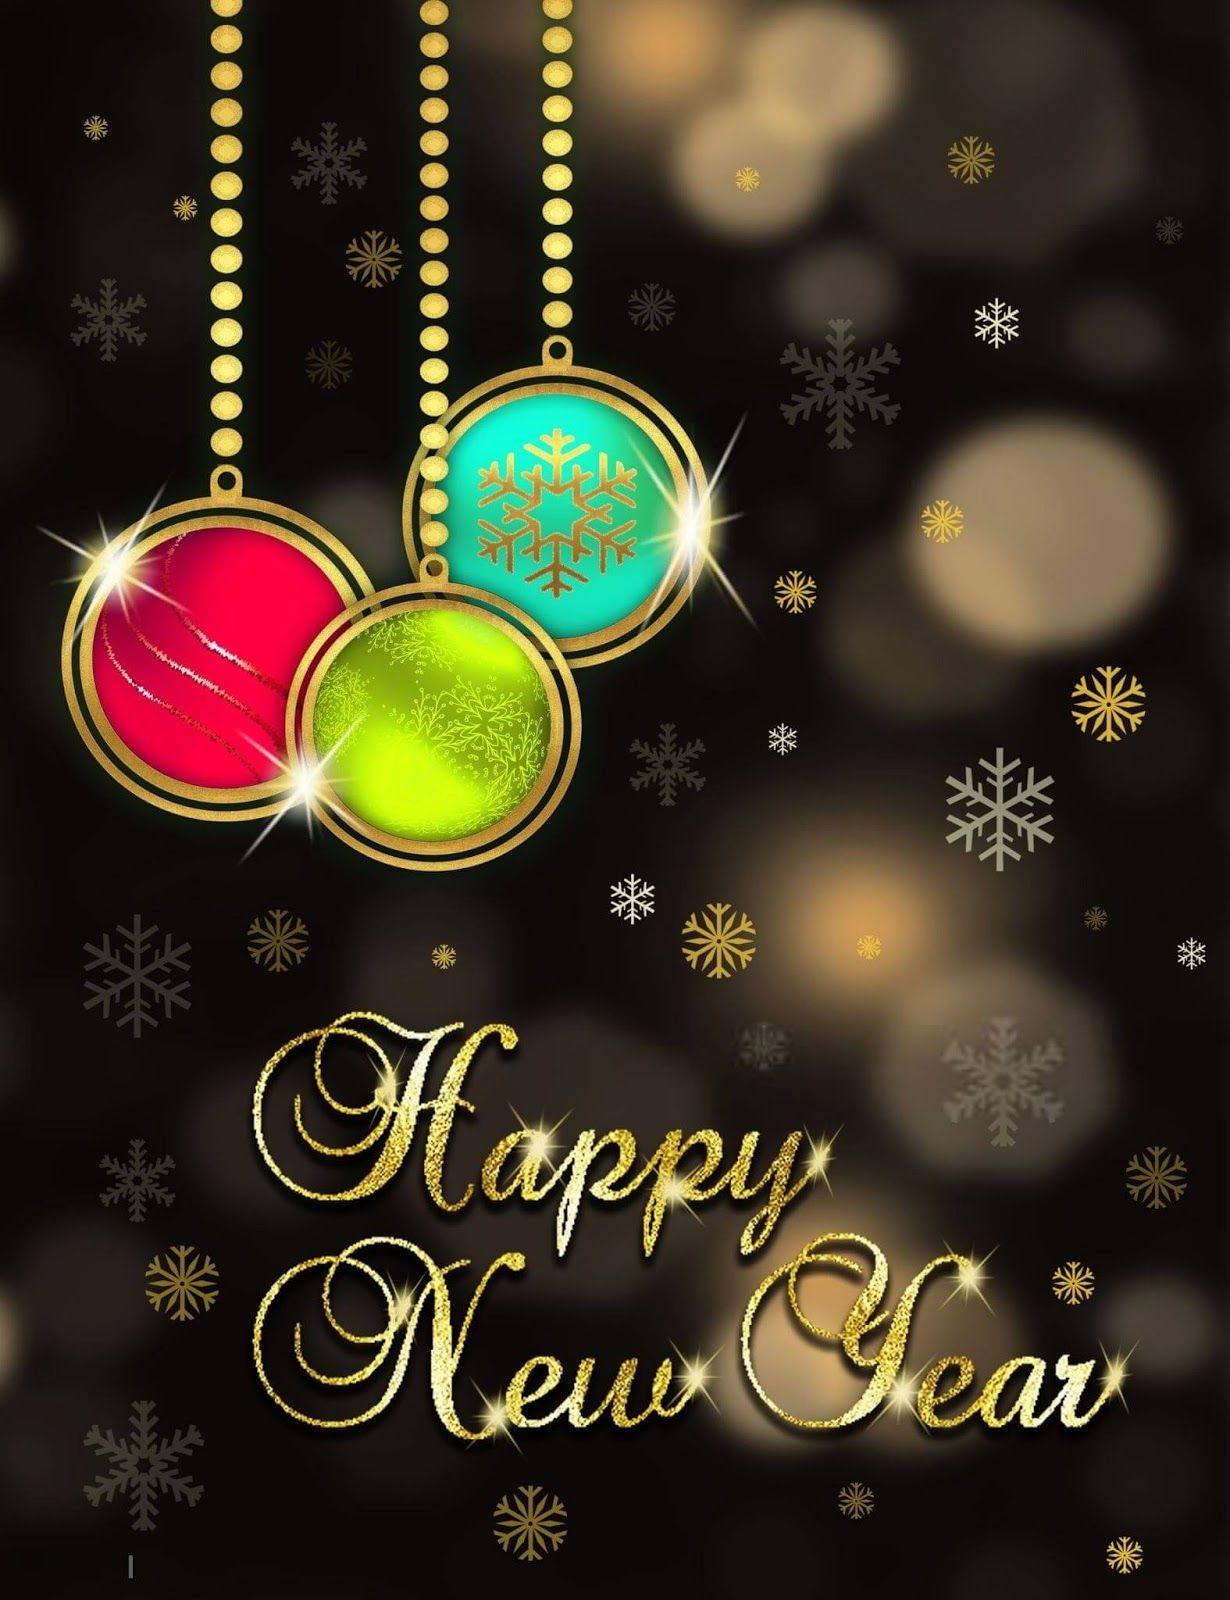 Happy New Year 2020 HD Wallpaper Images Download Happy 1230x1600